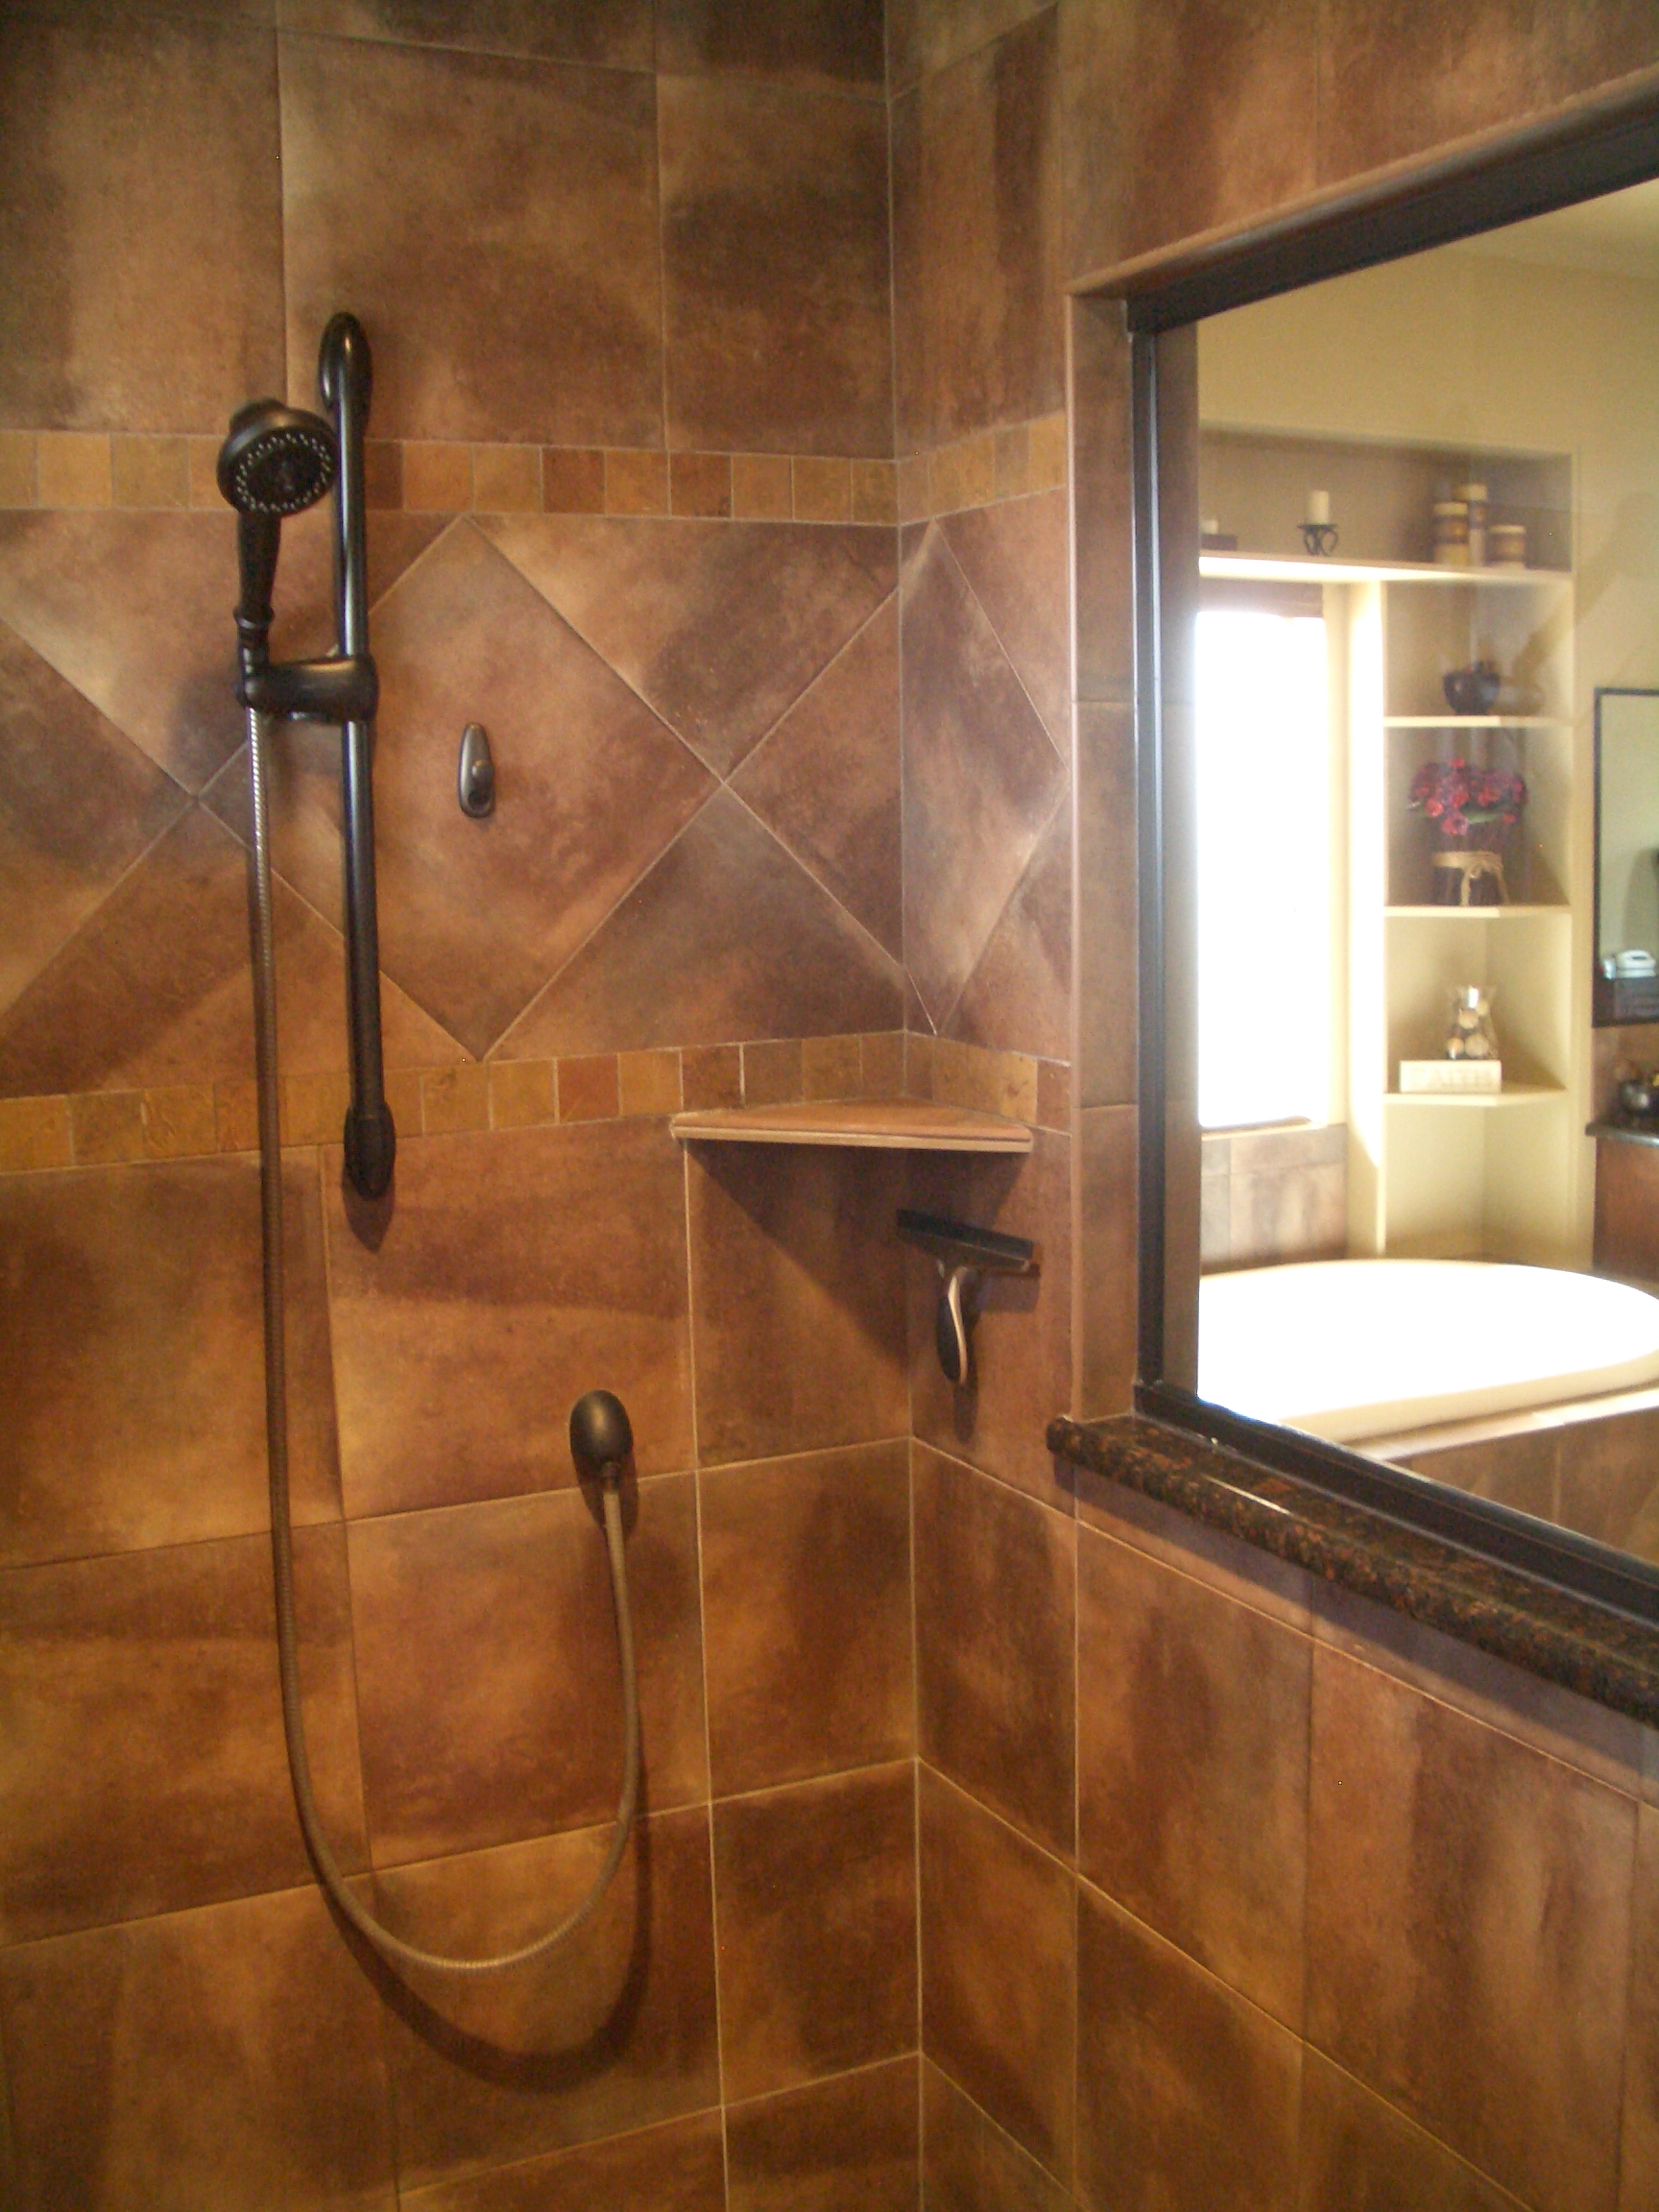 How to build a tiled shower tub - How To Build A Shower Shelf